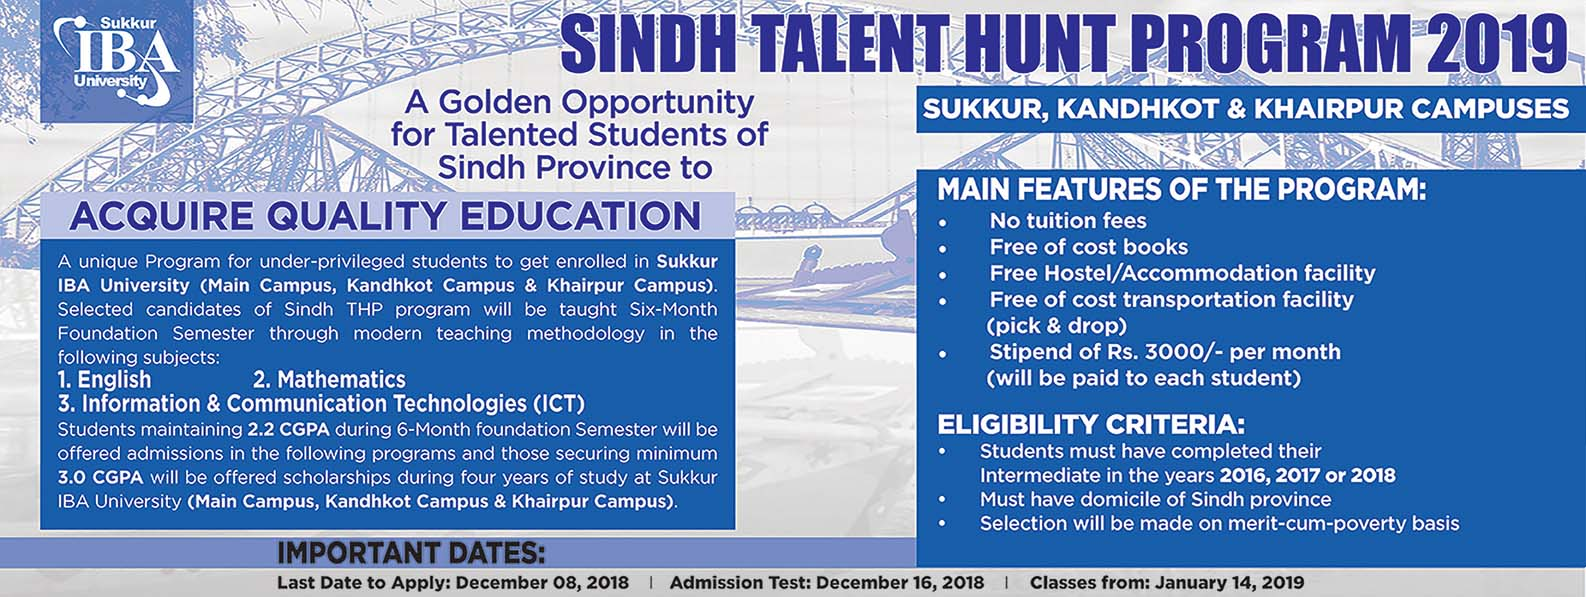 IBA Sukkur Talent Hunt Program 2019 Form, Last Date, Test Result